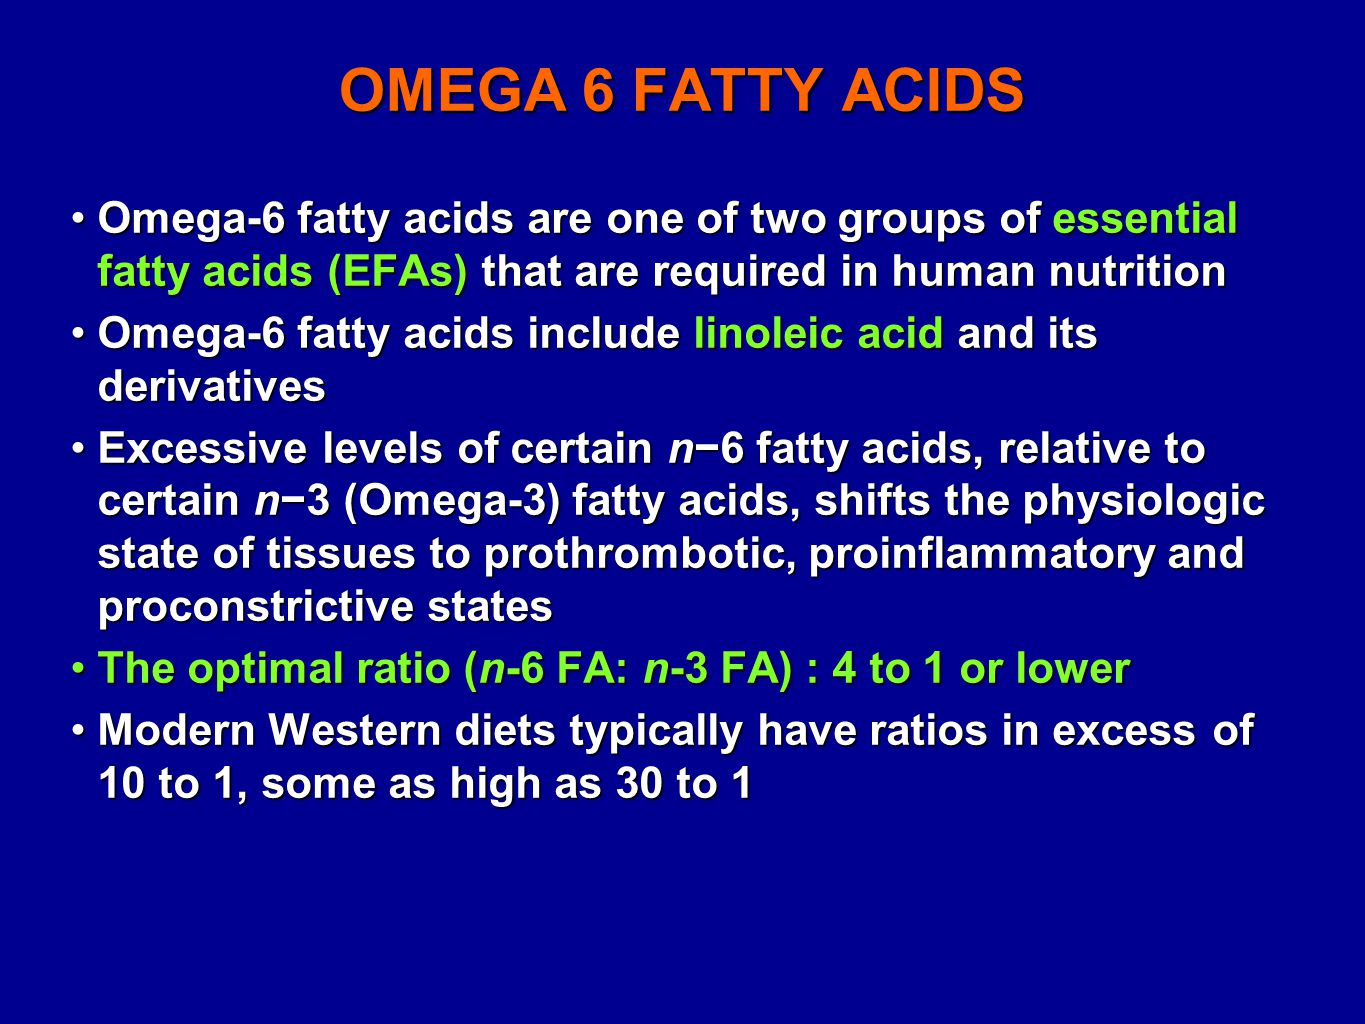 OMEGA 6 FATTY ACIDS Omega-6 fatty acids are one of two groups of essential fatty acids (EFAs) that are required in human nutritionOmega-6 fatty acids are one of two groups of essential fatty acids (EFAs) that are required in human nutrition Omega-6 fatty acids include linoleic acid and its derivativesOmega-6 fatty acids include linoleic acid and its derivatives Excessive levels of certain n−6 fatty acids, relative to certain n−3 (Omega-3) fatty acids, shifts the physiologic state of tissues to prothrombotic, proinflammatory and proconstrictive statesExcessive levels of certain n−6 fatty acids, relative to certain n−3 (Omega-3) fatty acids, shifts the physiologic state of tissues to prothrombotic, proinflammatory and proconstrictive states The optimal ratio (n-6 FA: n-3 FA) : 4 to 1 or lowerThe optimal ratio (n-6 FA: n-3 FA) : 4 to 1 or lower Modern Western diets typically have ratios in excess of 10 to 1, some as high as 30 to 1Modern Western diets typically have ratios in excess of 10 to 1, some as high as 30 to 1